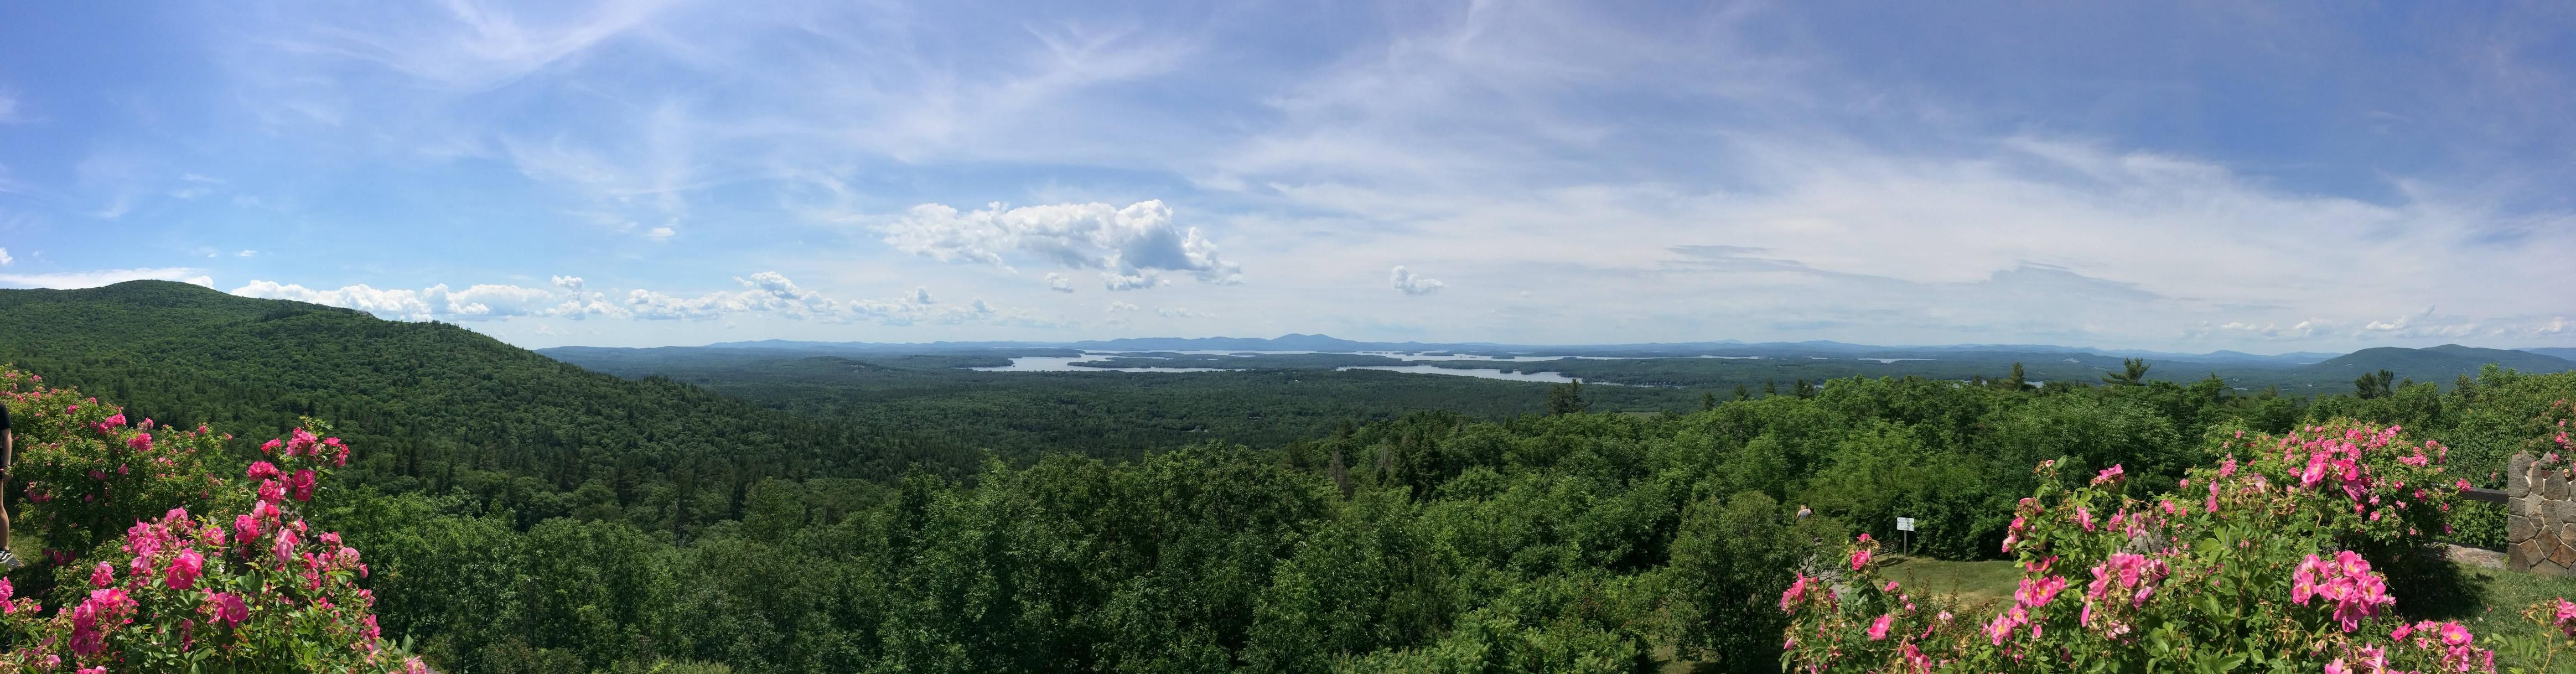 A Picture Taken from the Top of the Ossipee Mountains in New Hampshire [OC] [4655x1218] http://ift.tt/29ri3ug